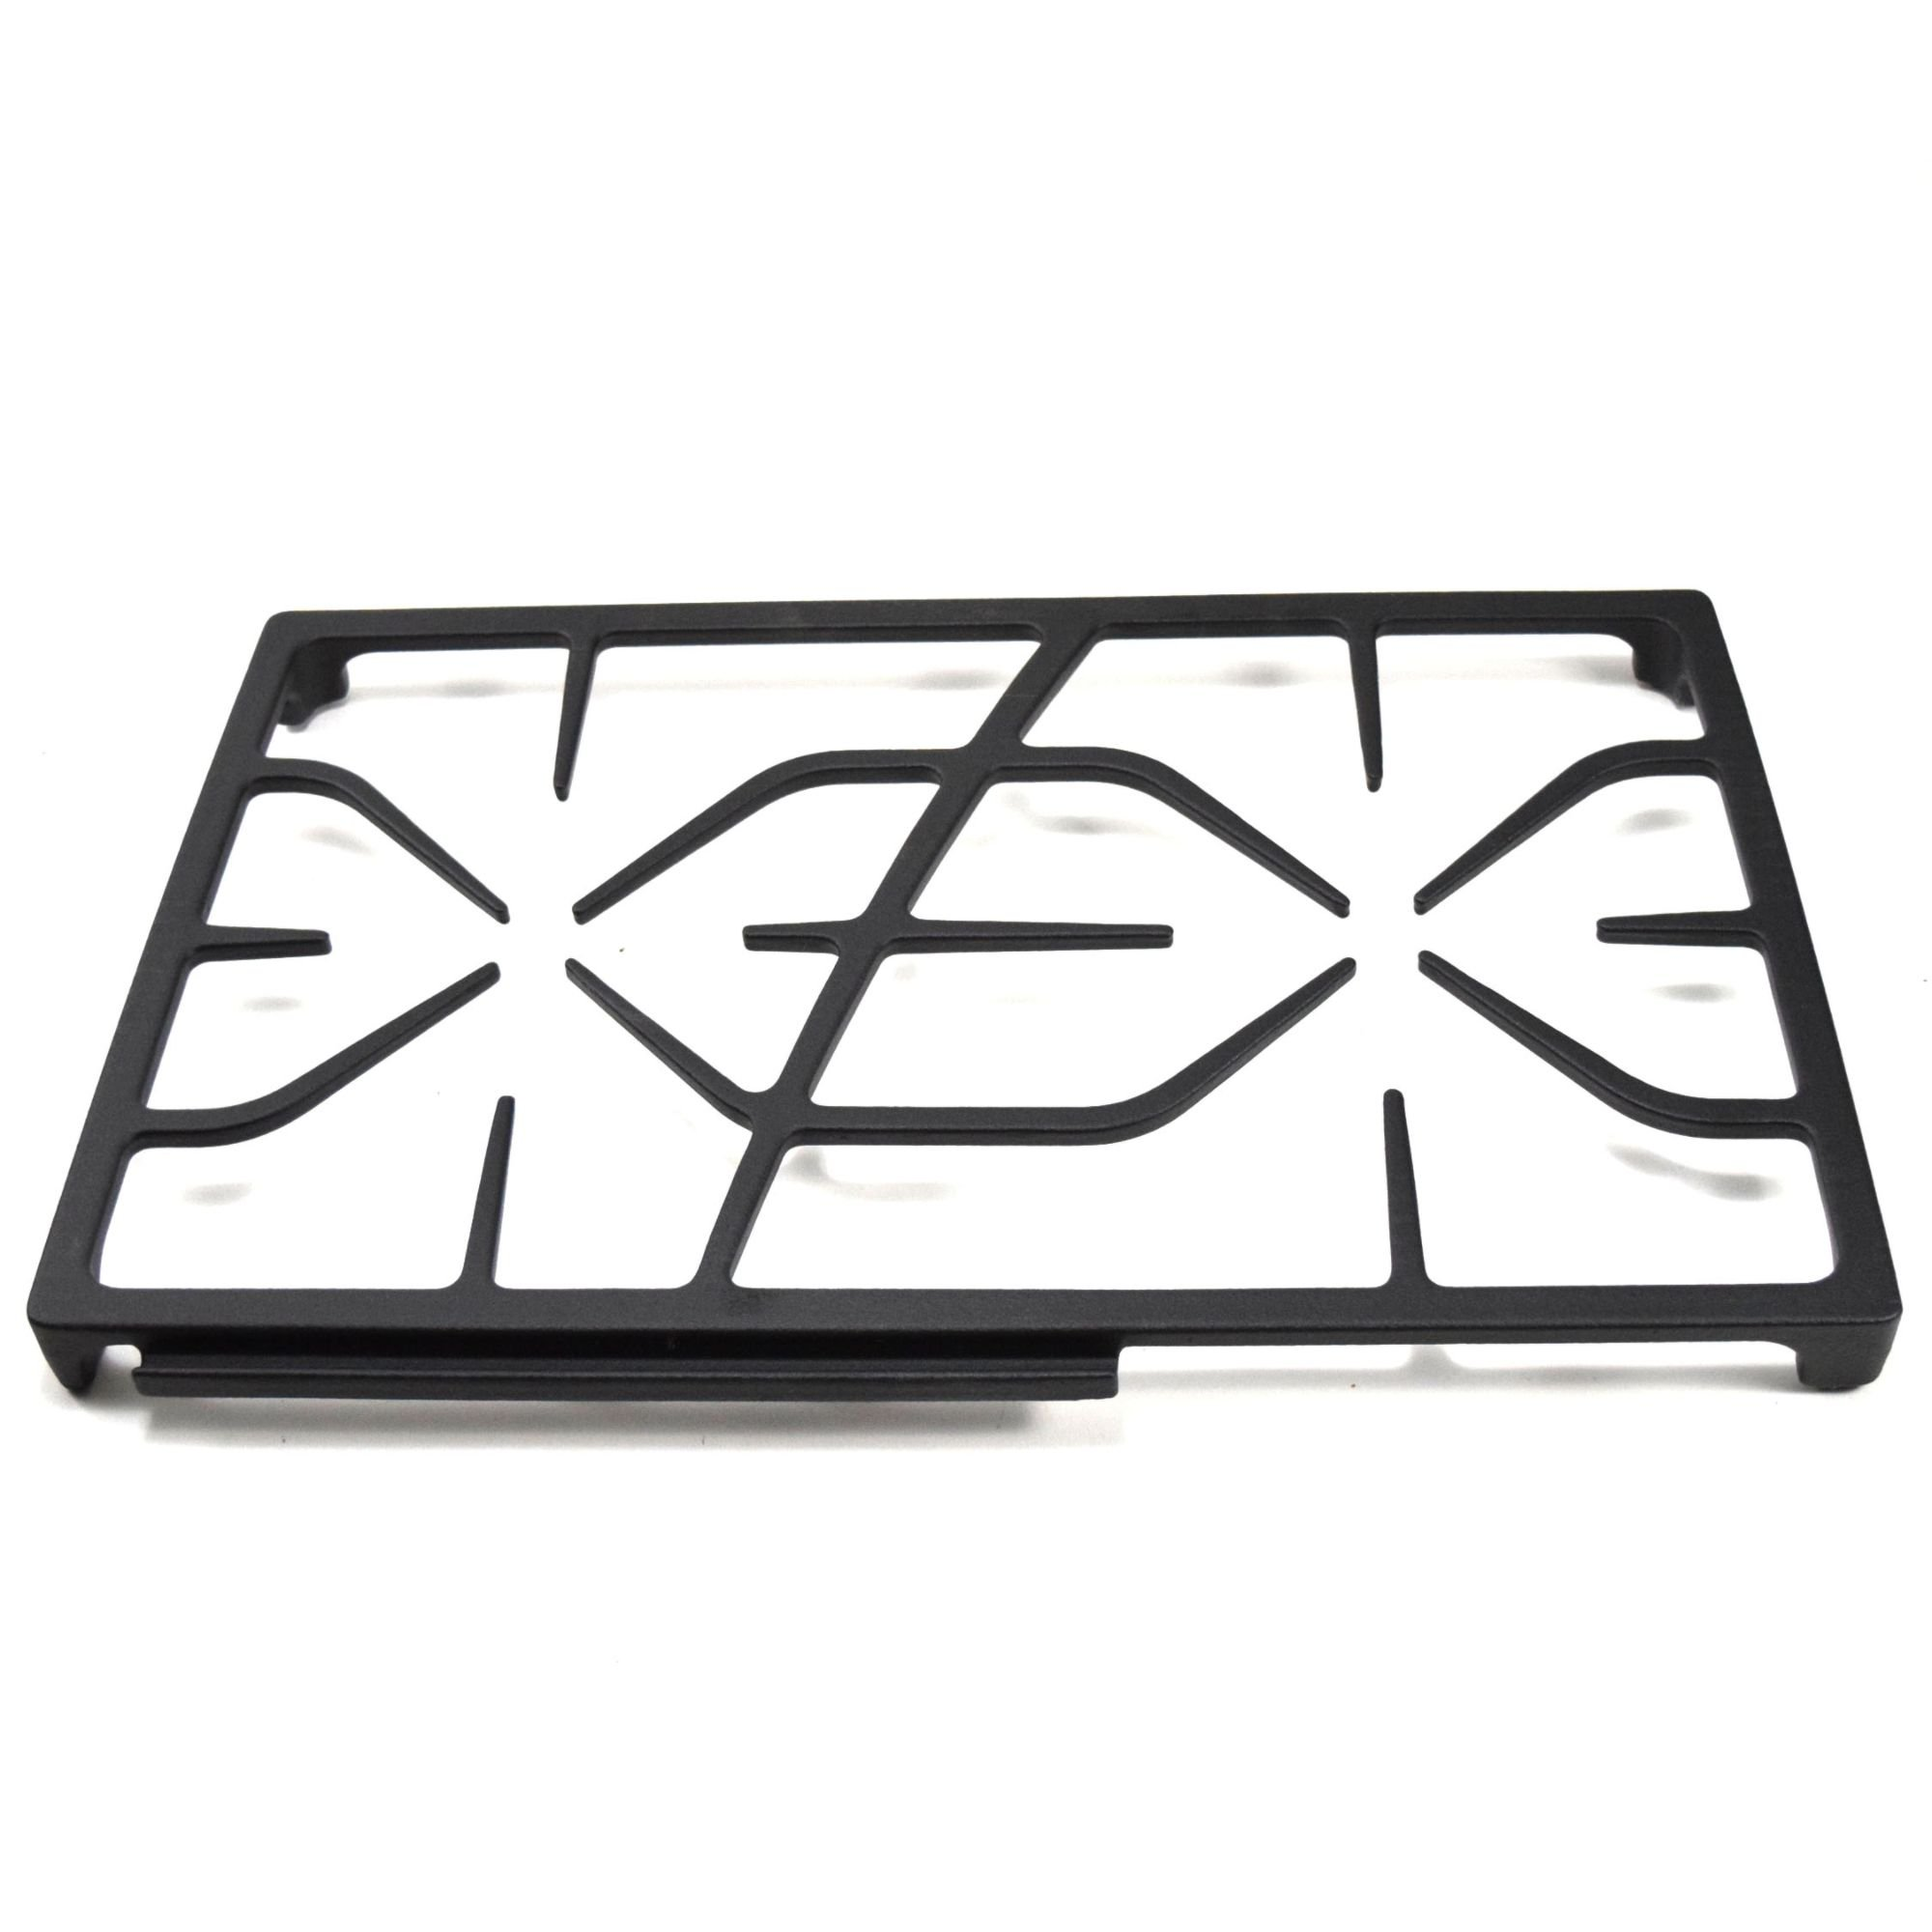 GE WB49X10076 Grate Right by GE